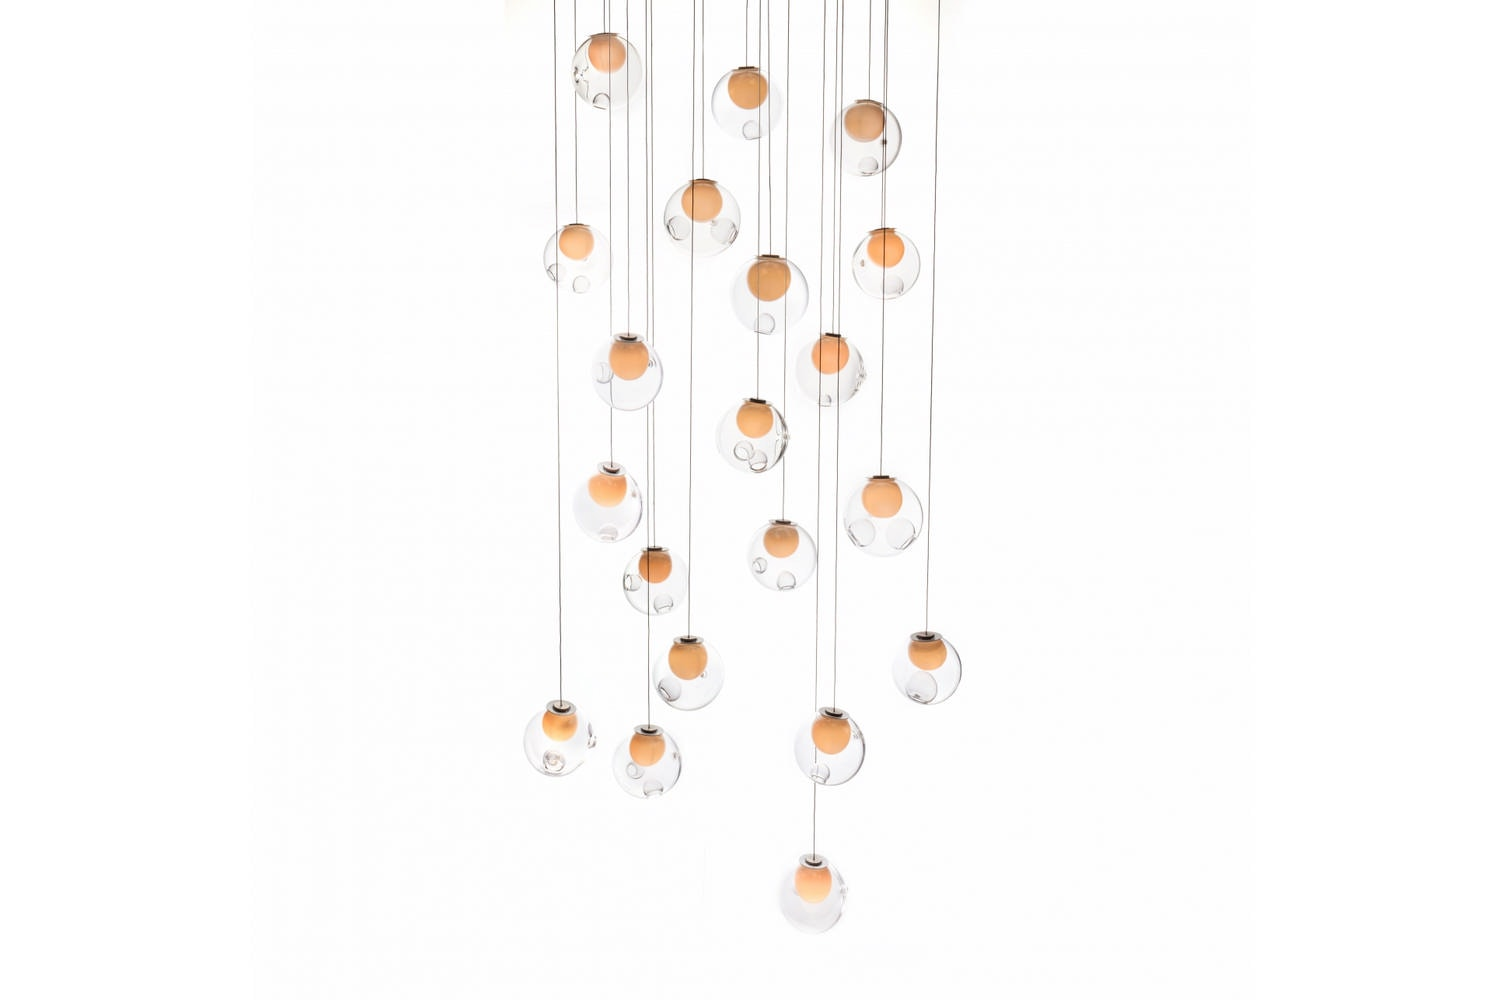 28.20 Random Suspension Lamp by Omer Arbel for Bocci